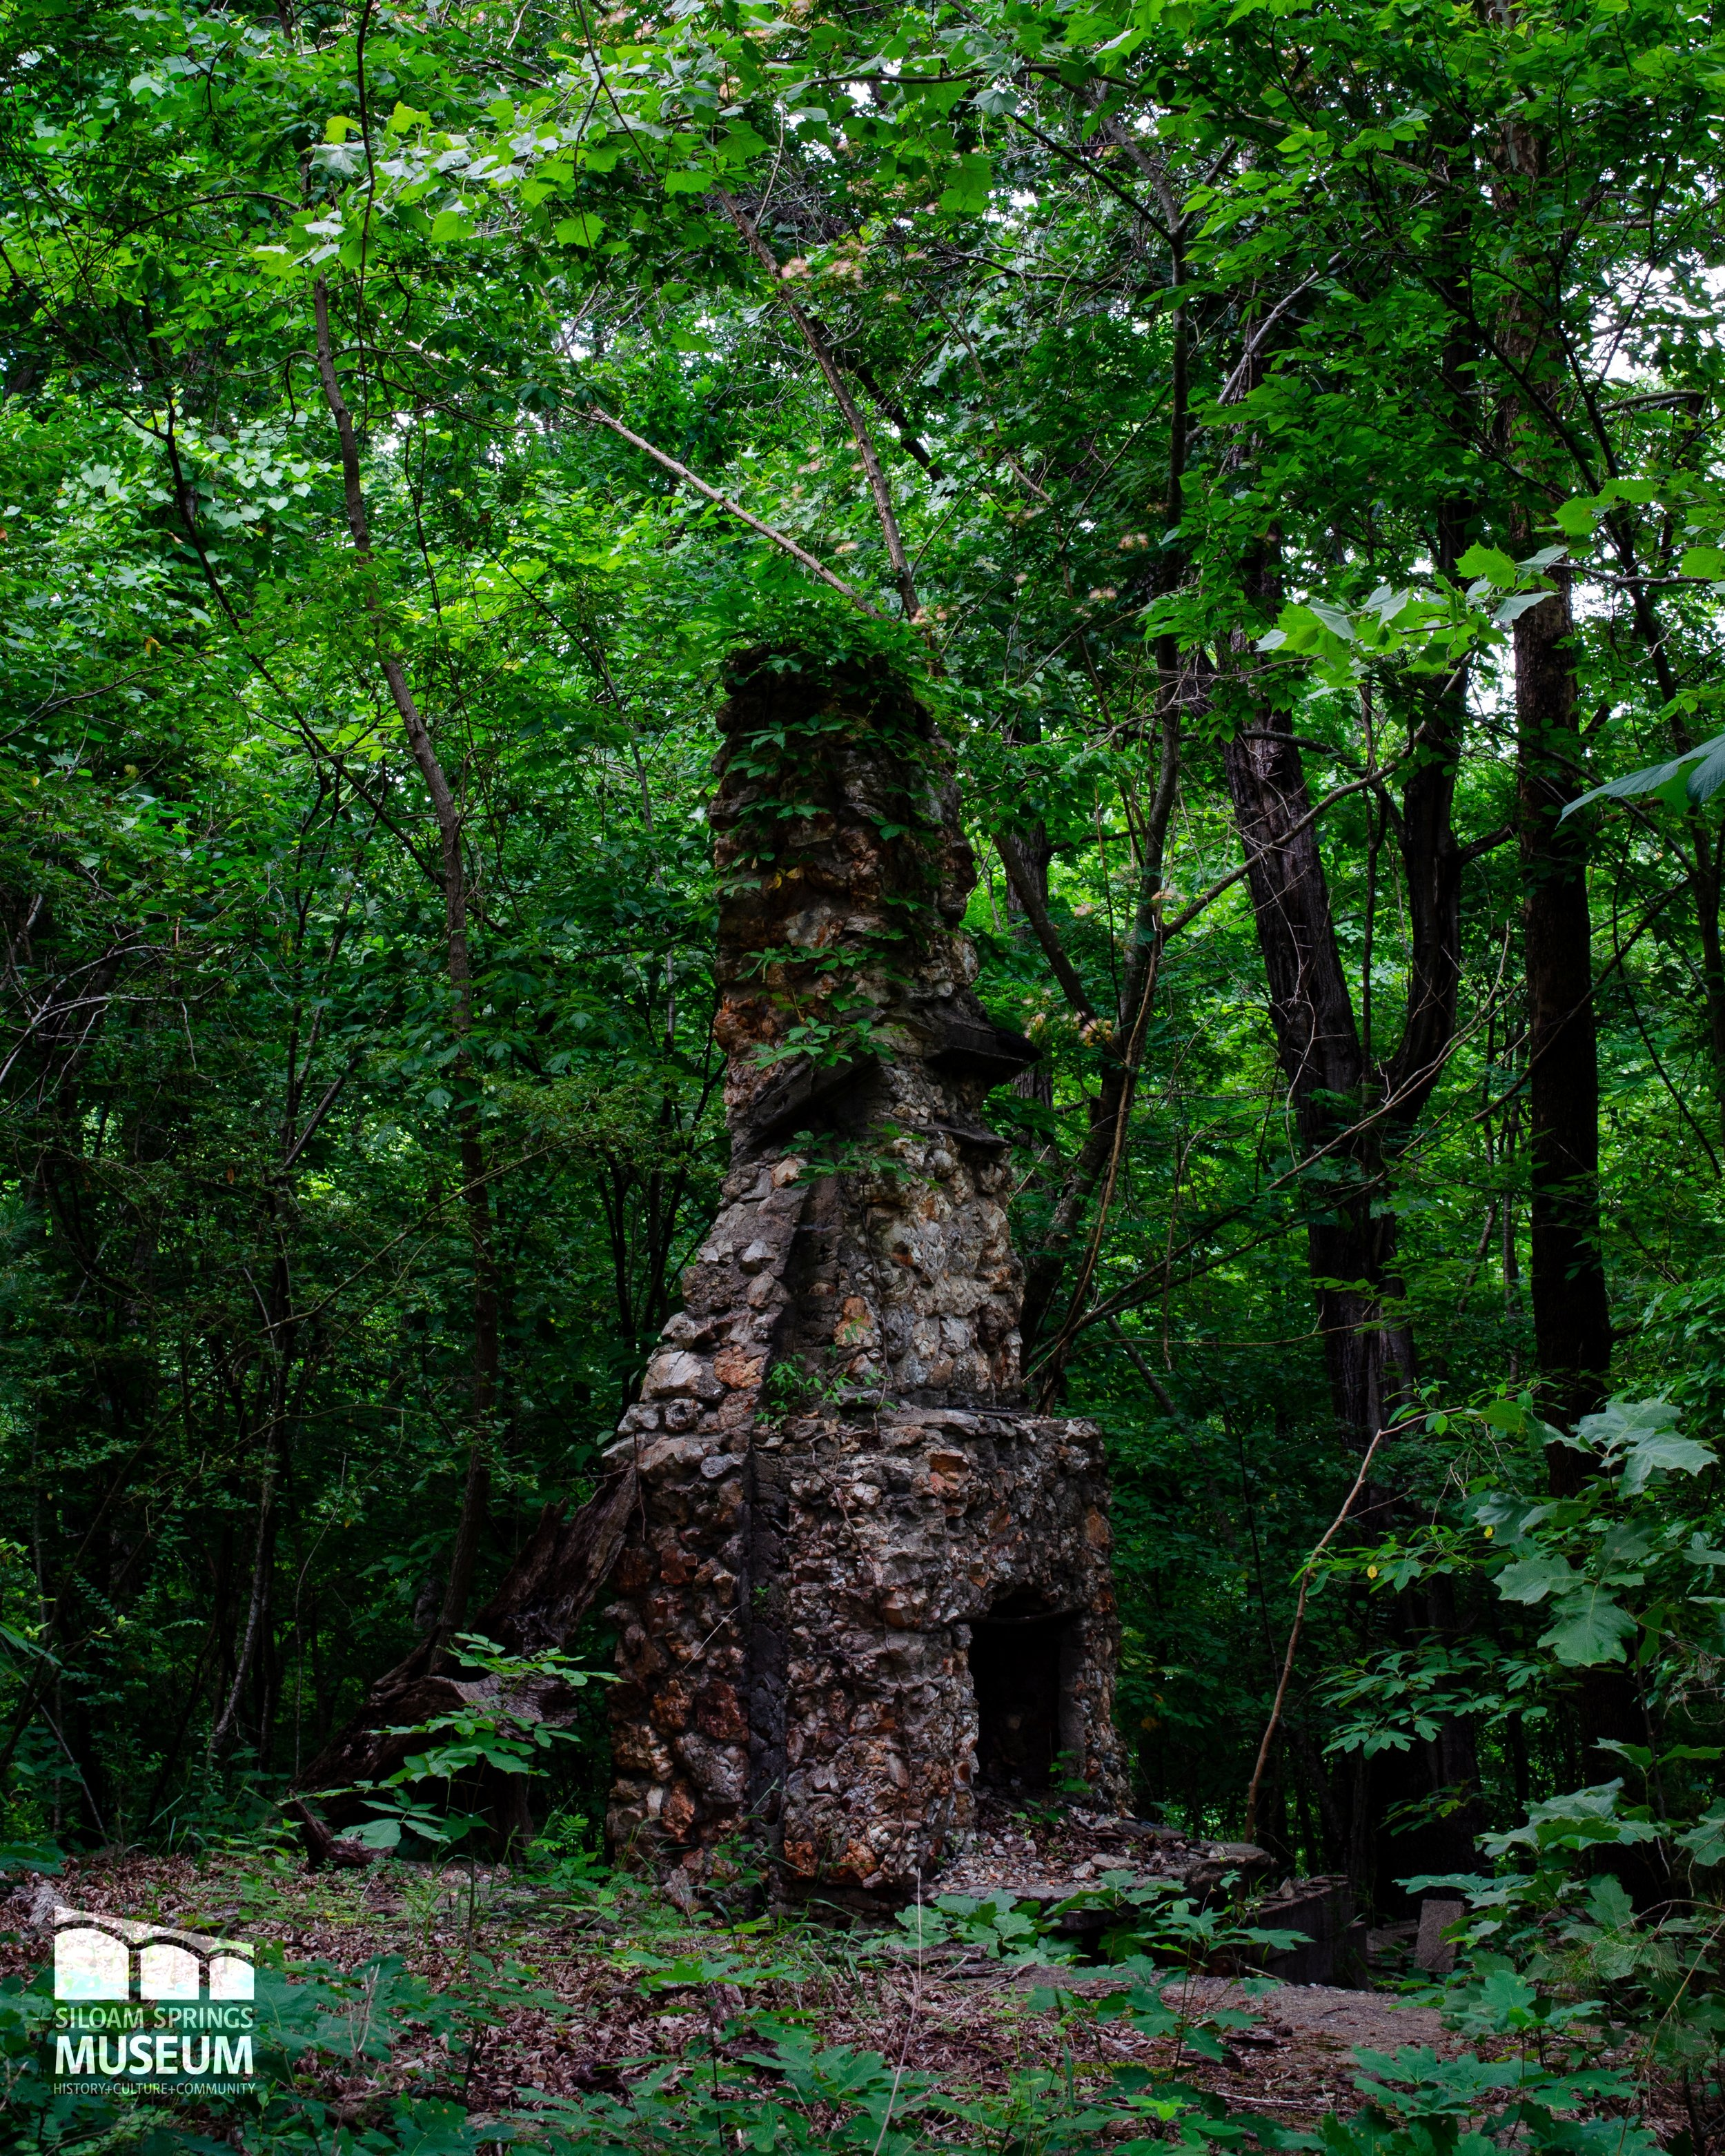 Though the Forest Park cabins no longer remain, some of their chimneys still stand alone in the woods.